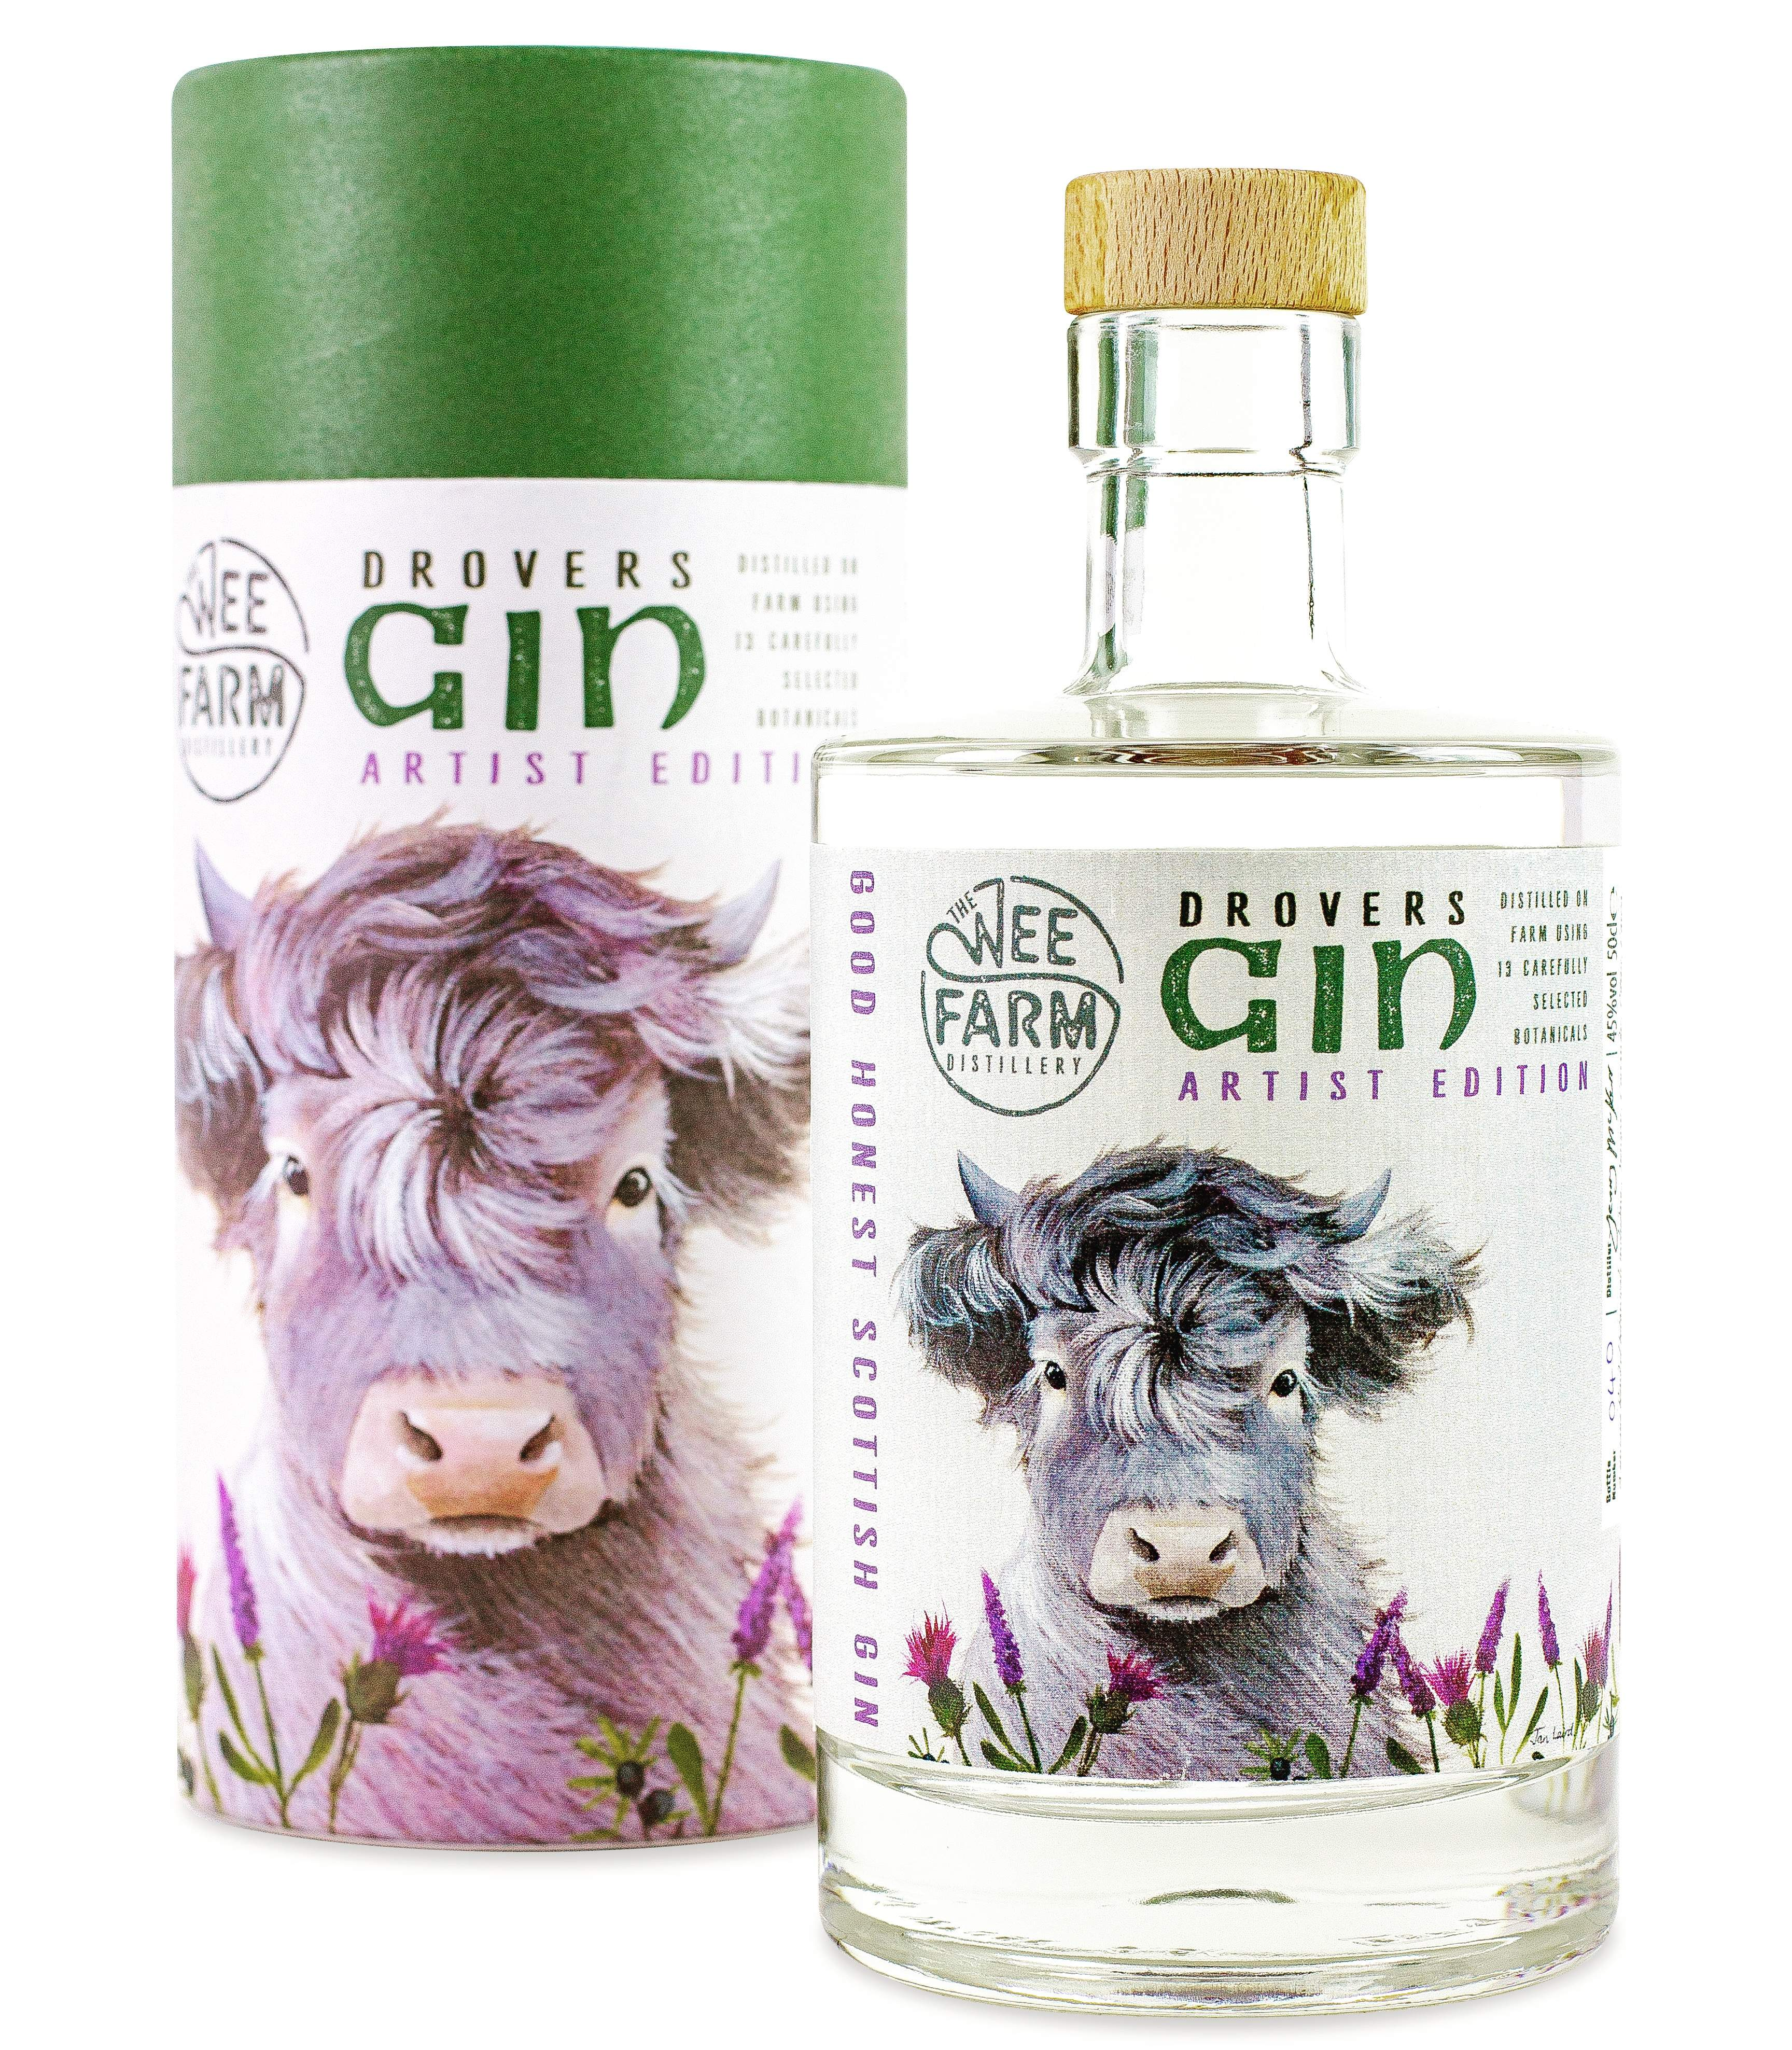 The Wee Farm Distillary, Drovers Gin